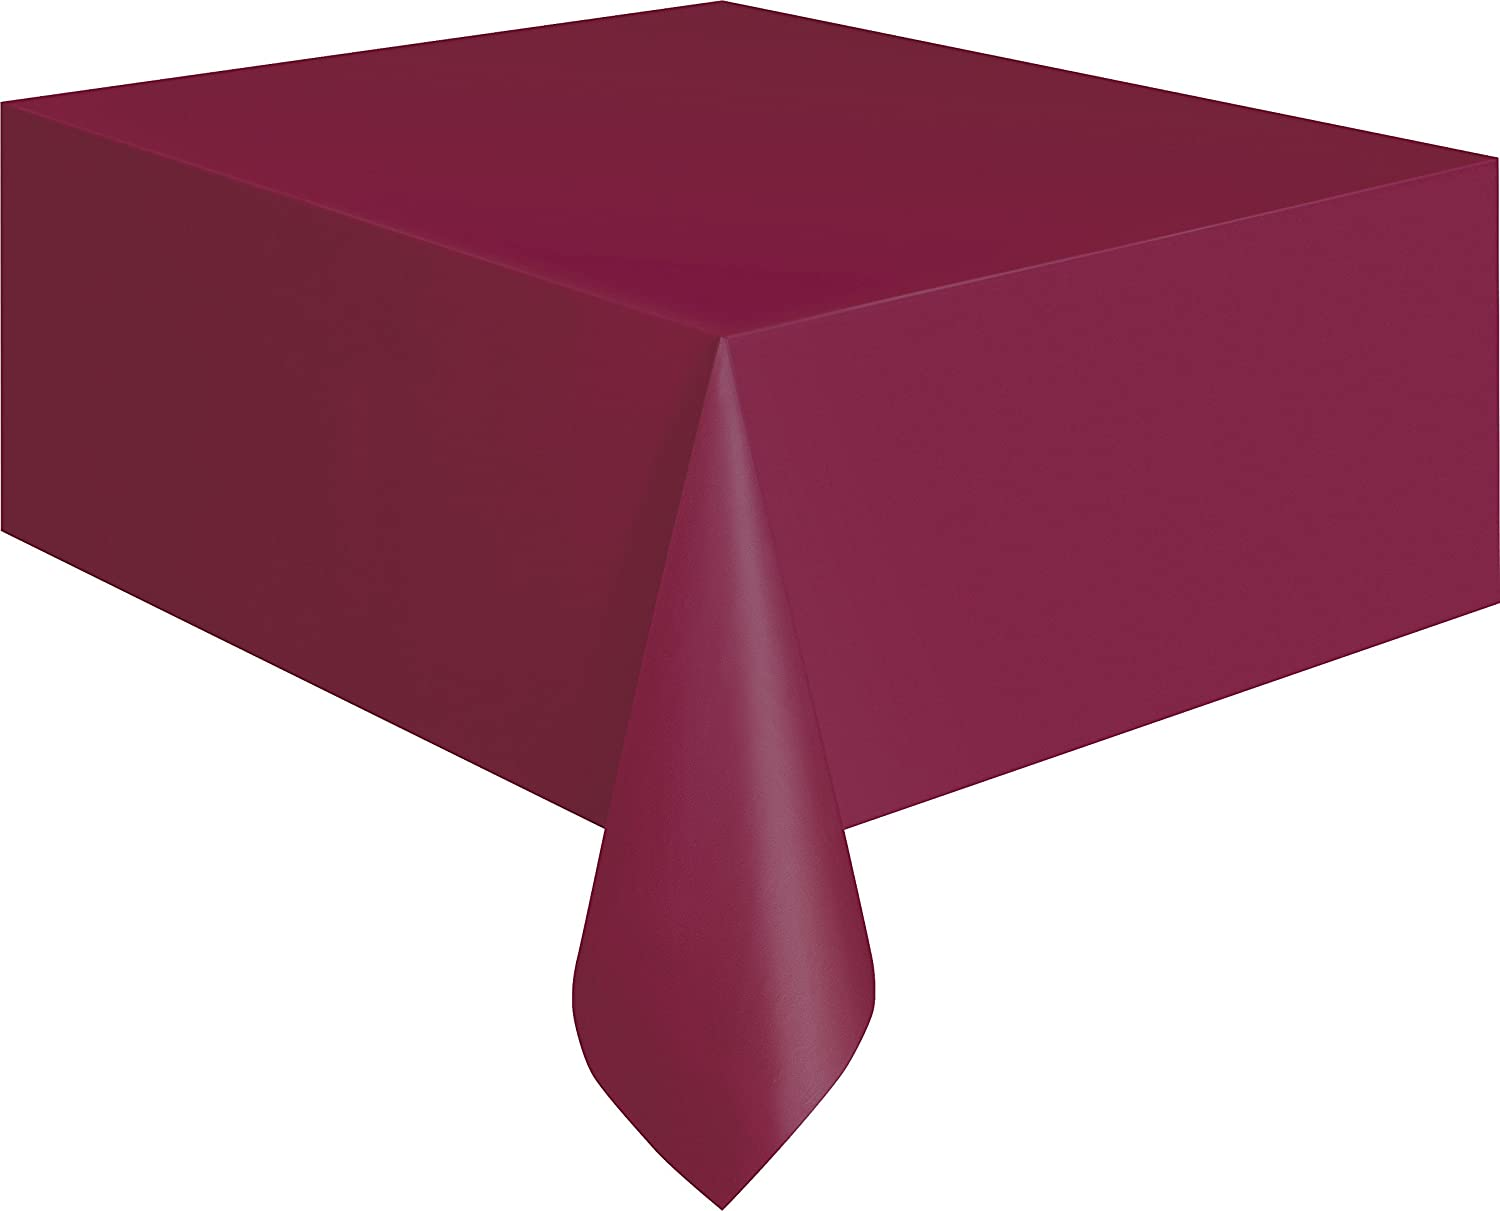 amazon com burgundy plastic tablecloth 108 x 54 kitchen dining rh amazon com tablecloth clip art vector tablecloth clip art black and white